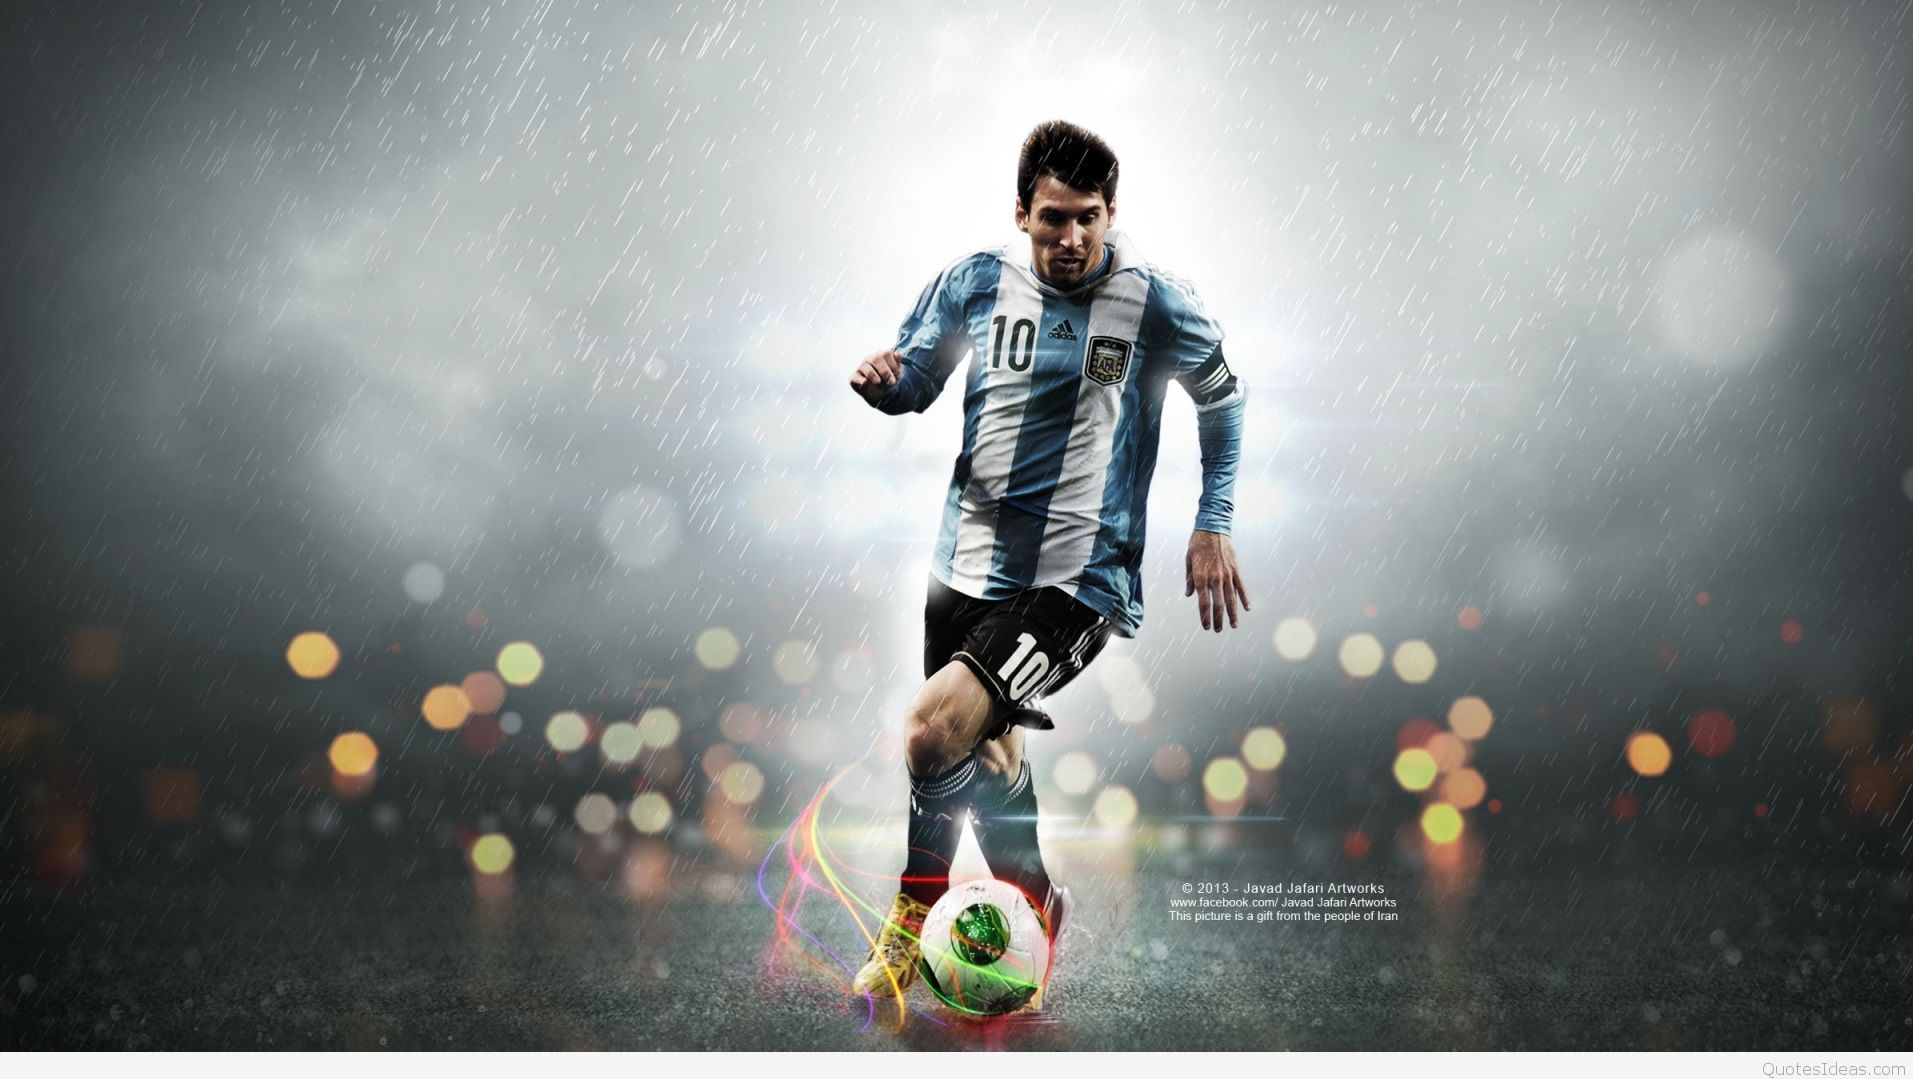 Lionel Messi best wallpaper for 2016 1913x1079